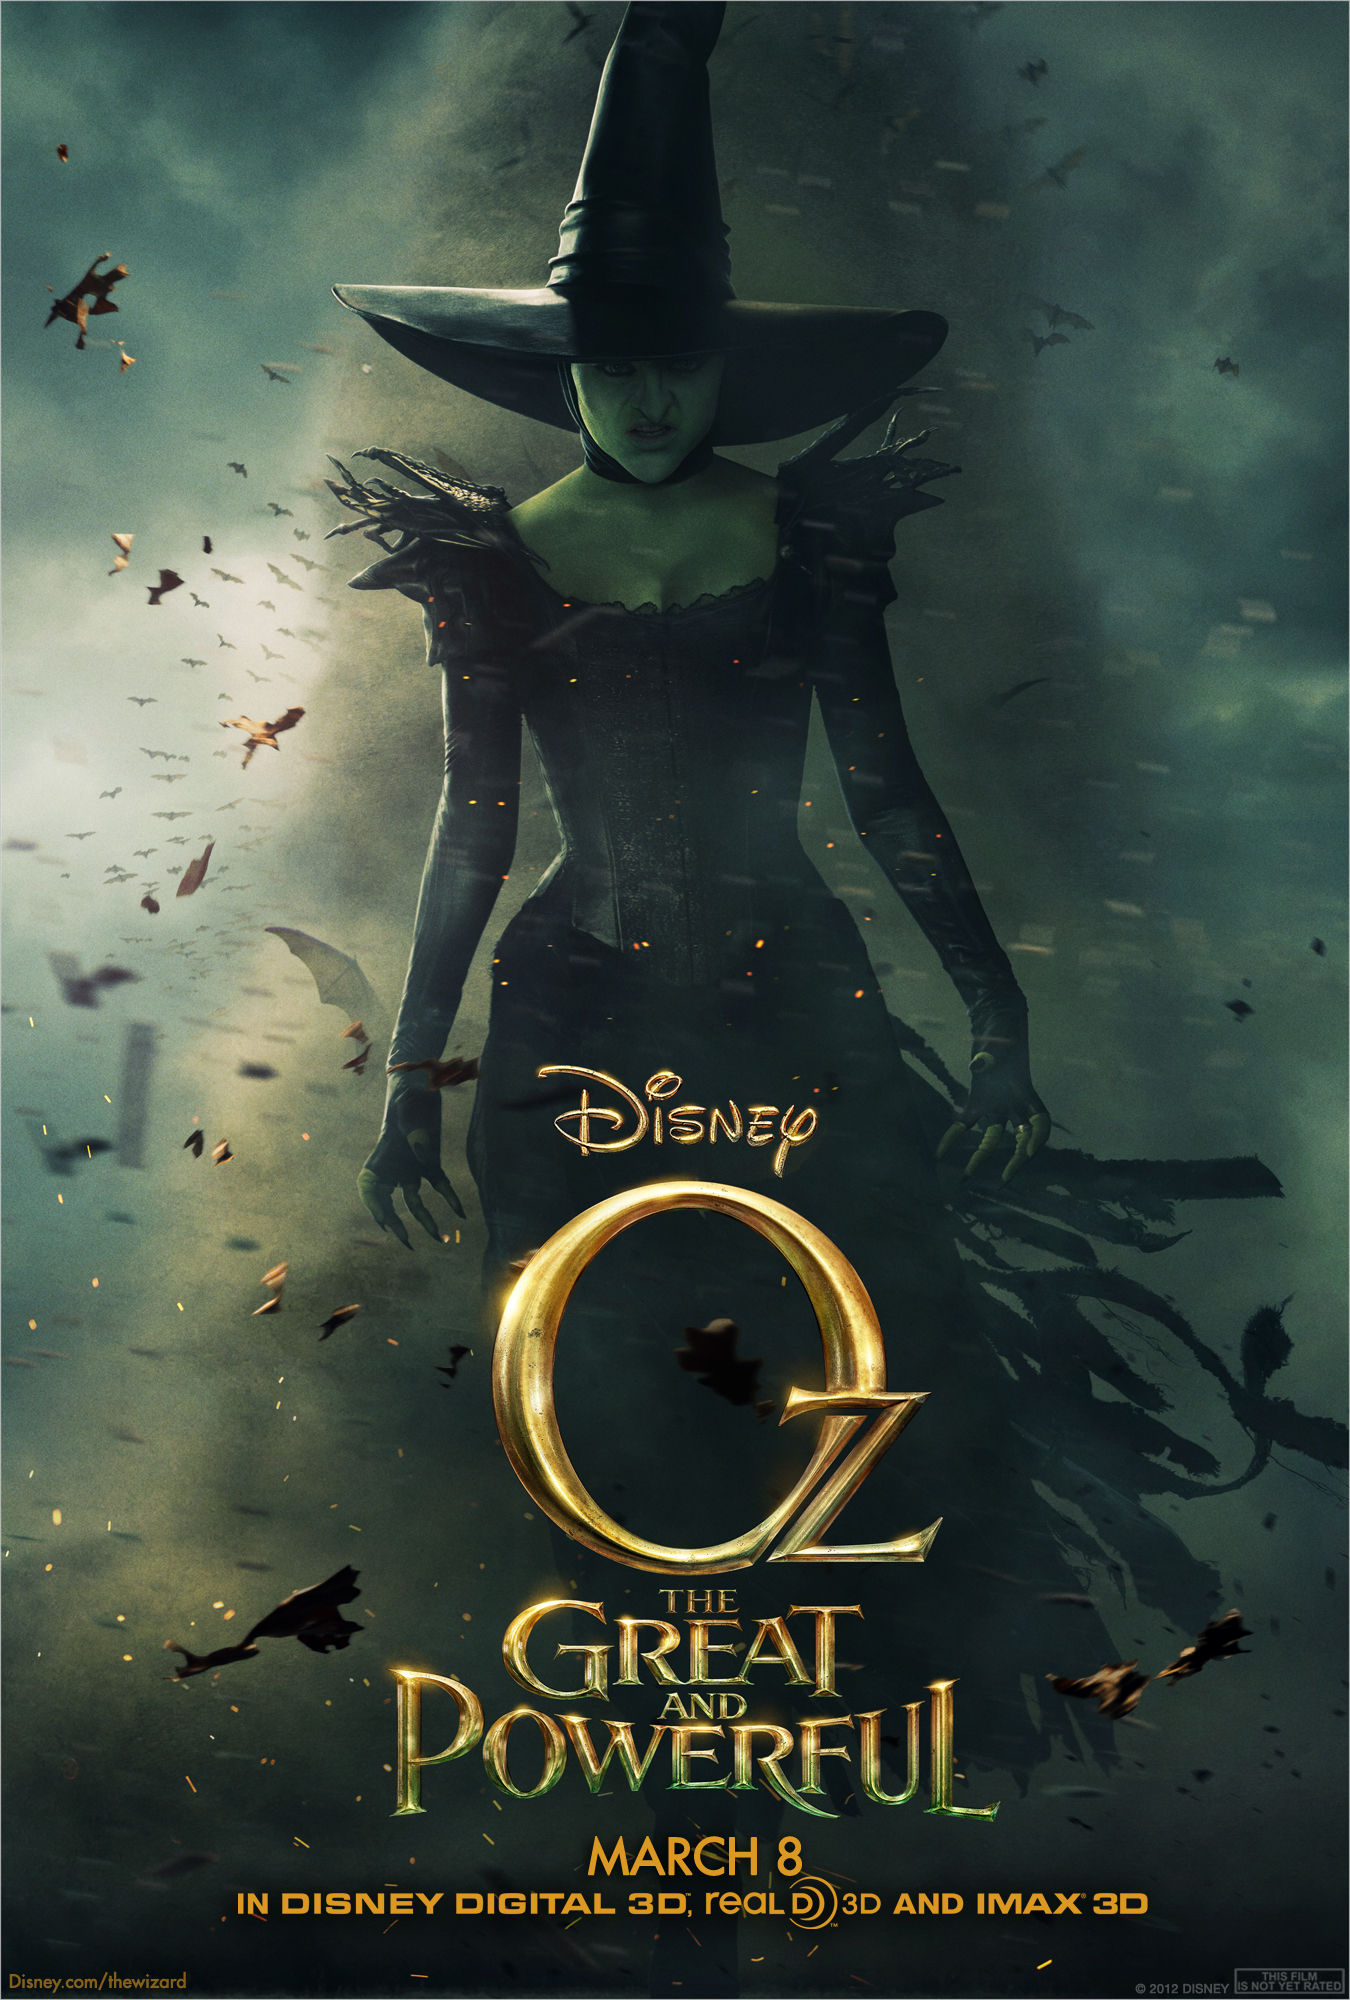 oz and ends  at film com elisabeth rappe offers an essay titled why oz the great and powerful is a major step back for witches and women it builds on the questions